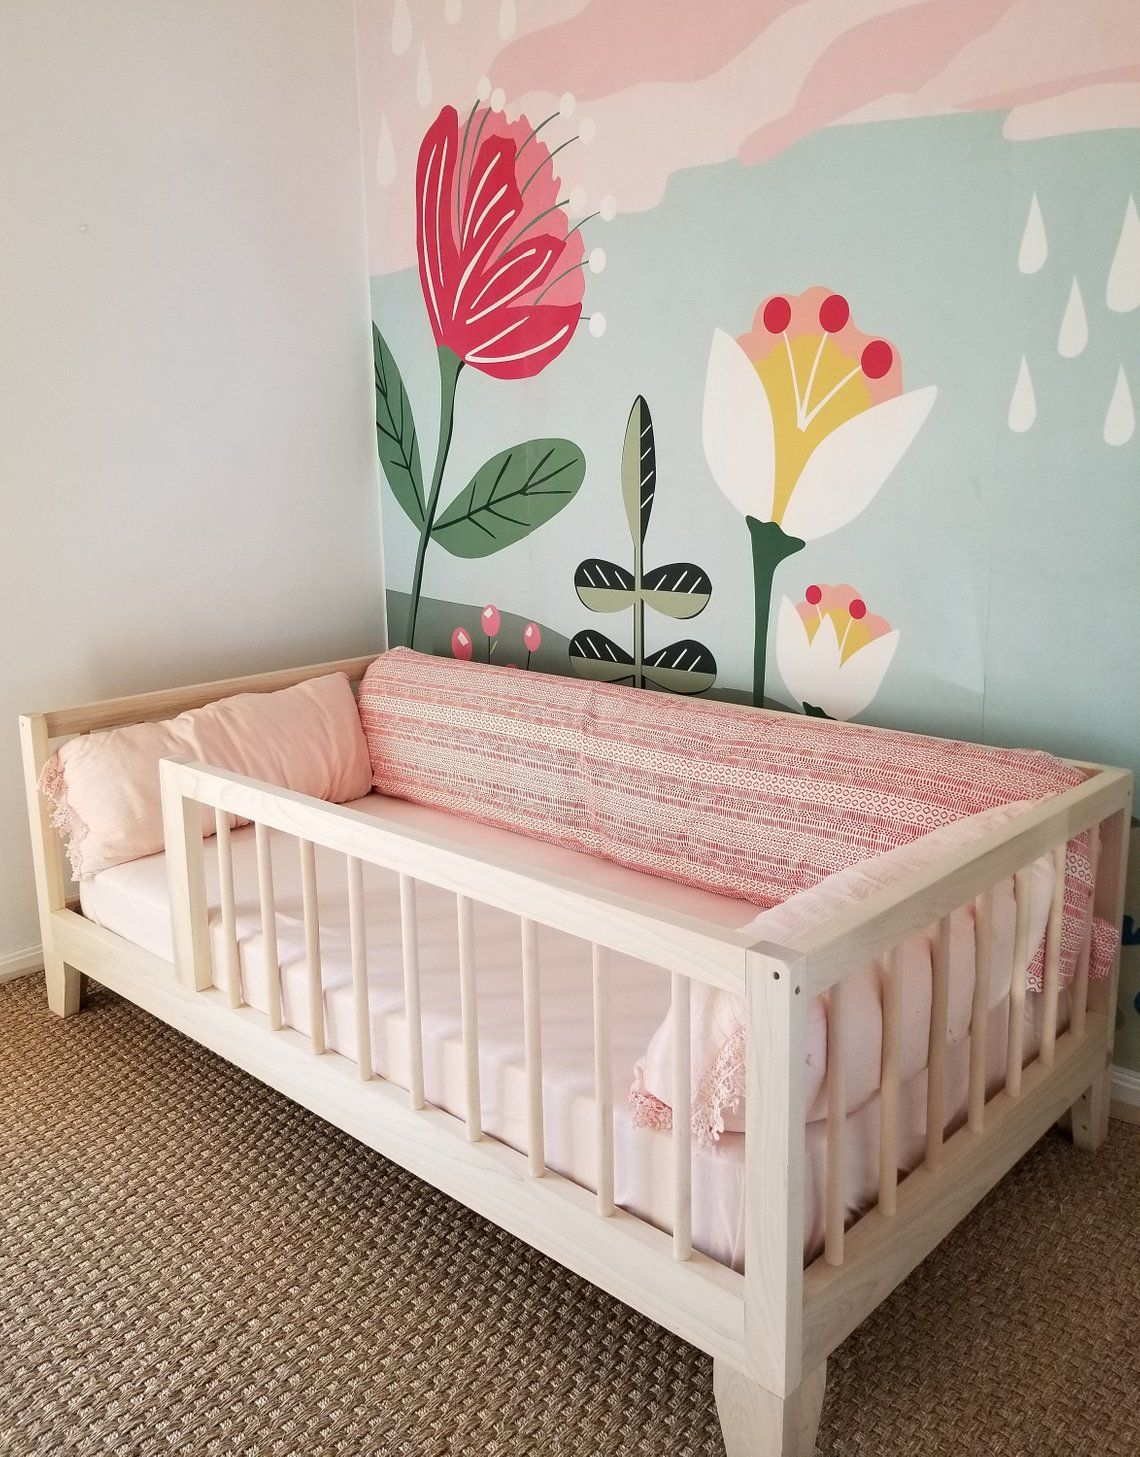 low priced 802bf 43800 Montessori Floor Bed to Raised Bed Convertible With Rails ...